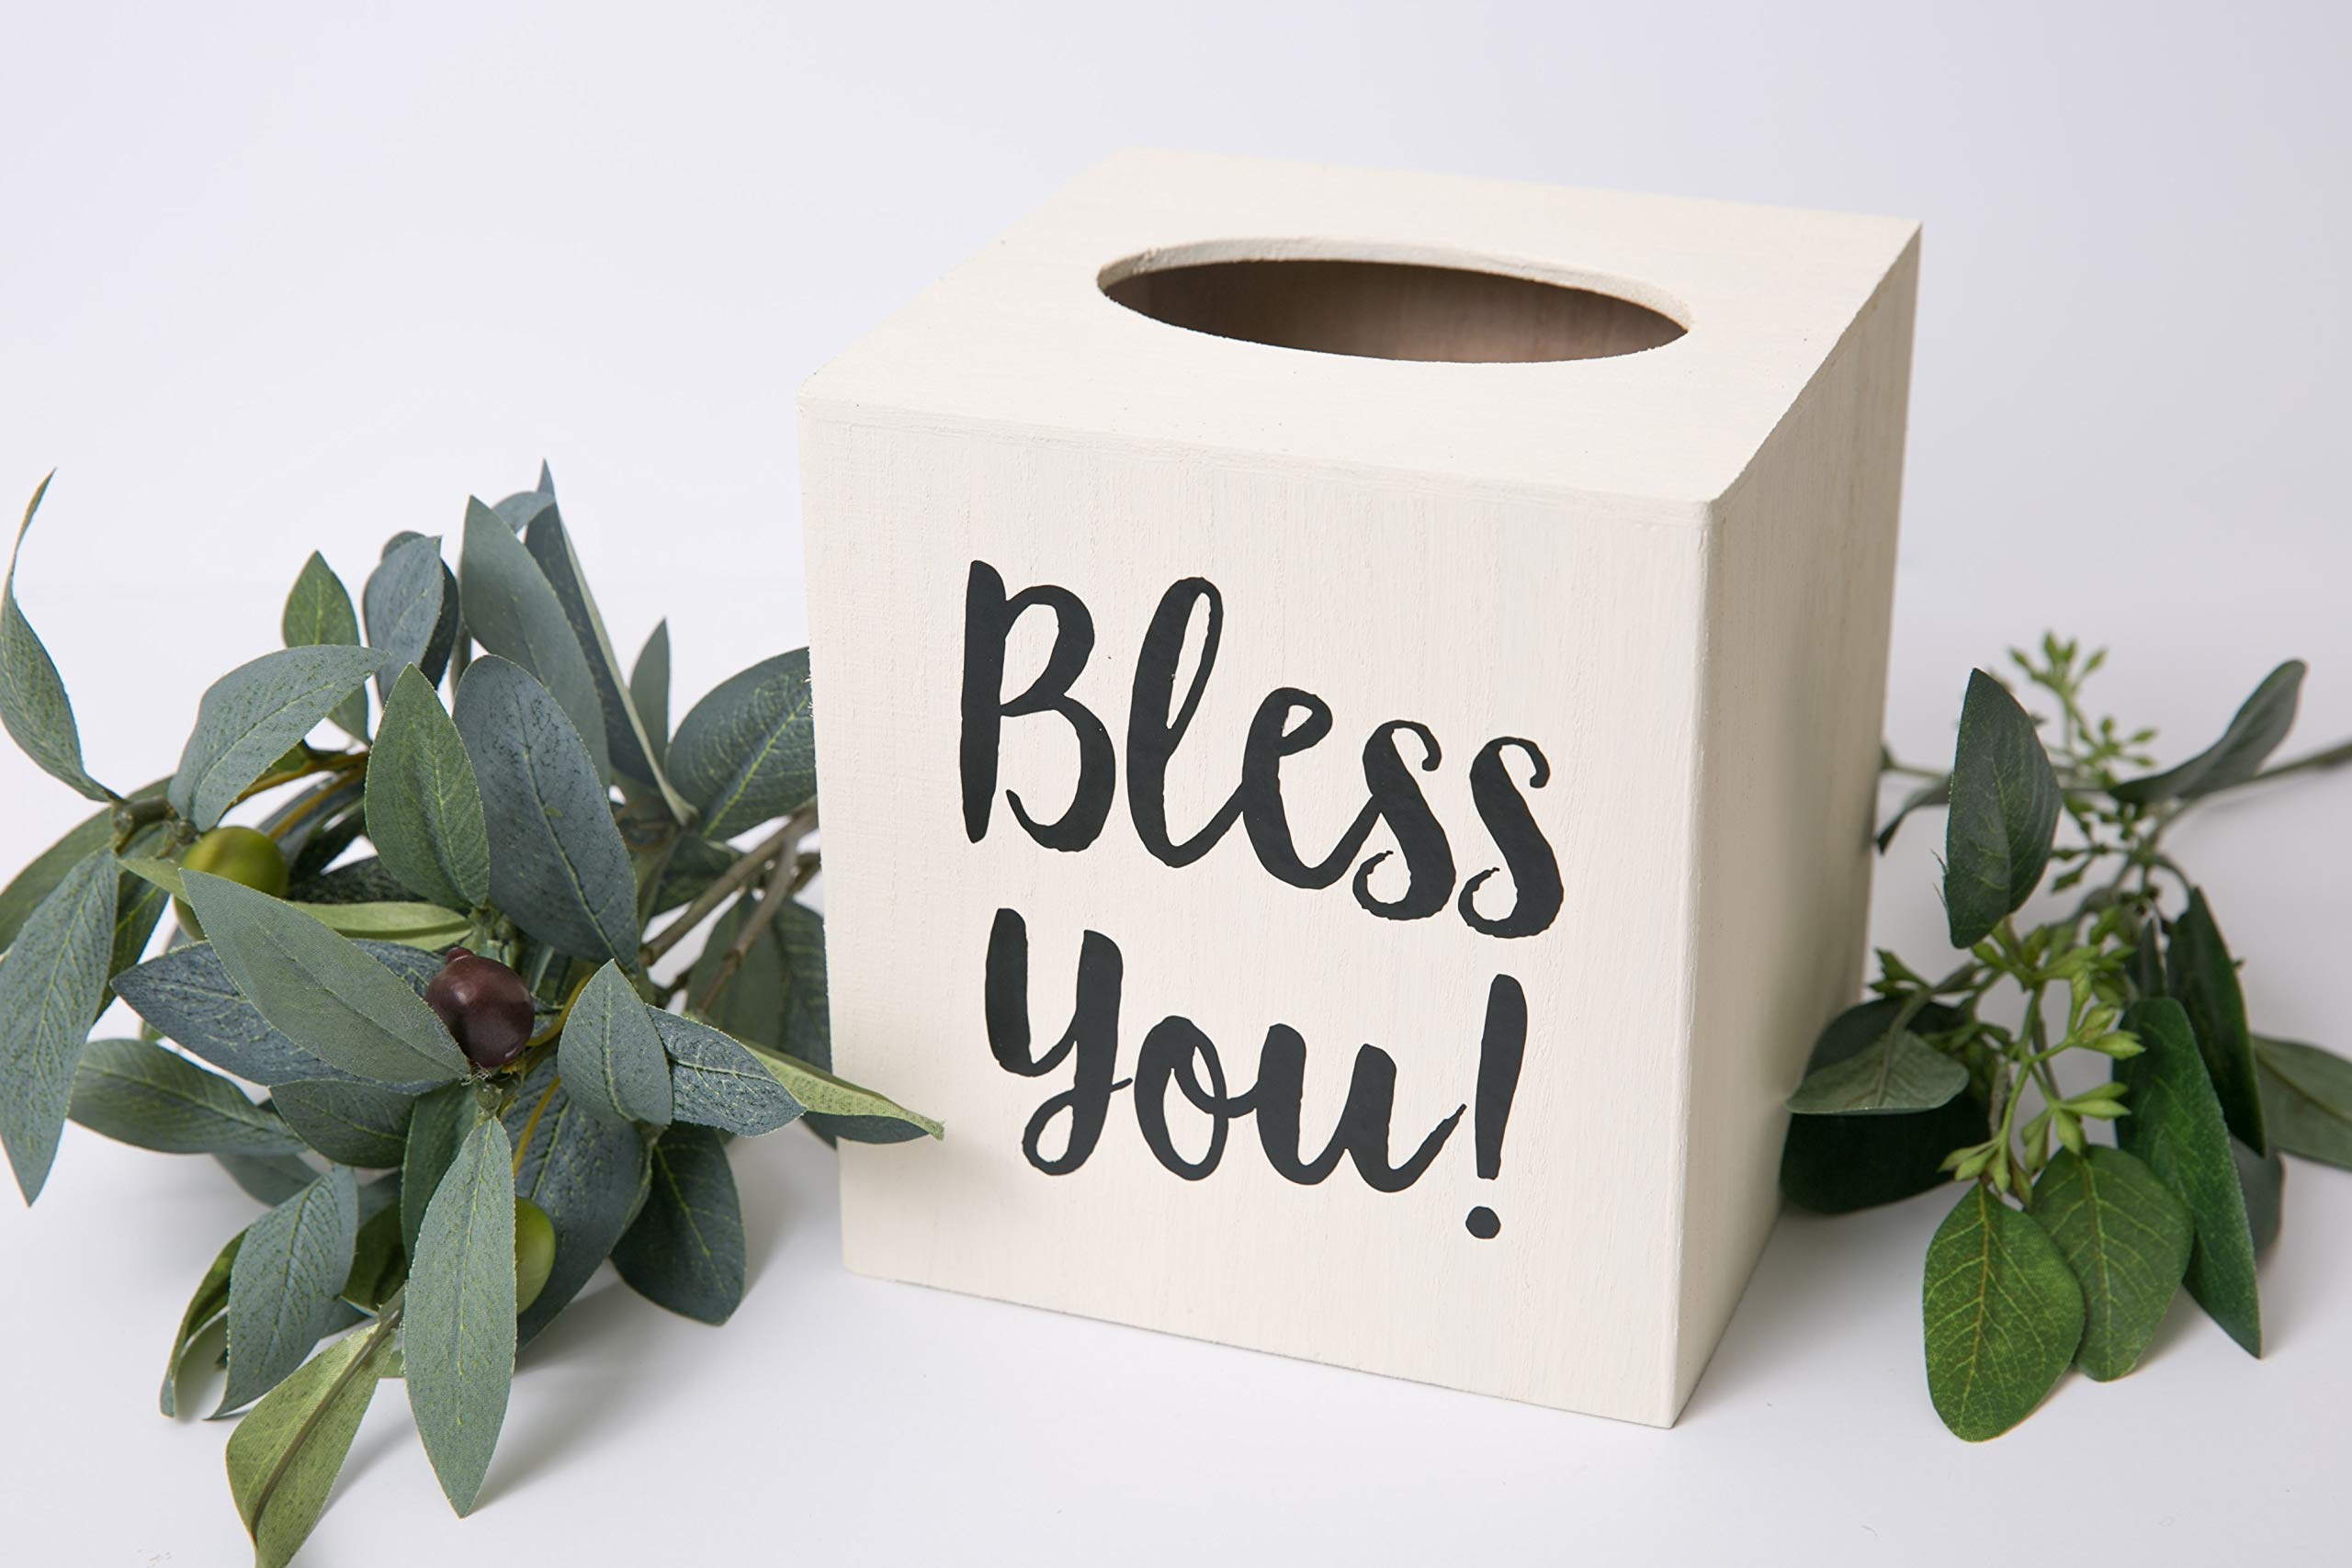 Bless You! Wood Tissue Box Cover by Cades and Birch